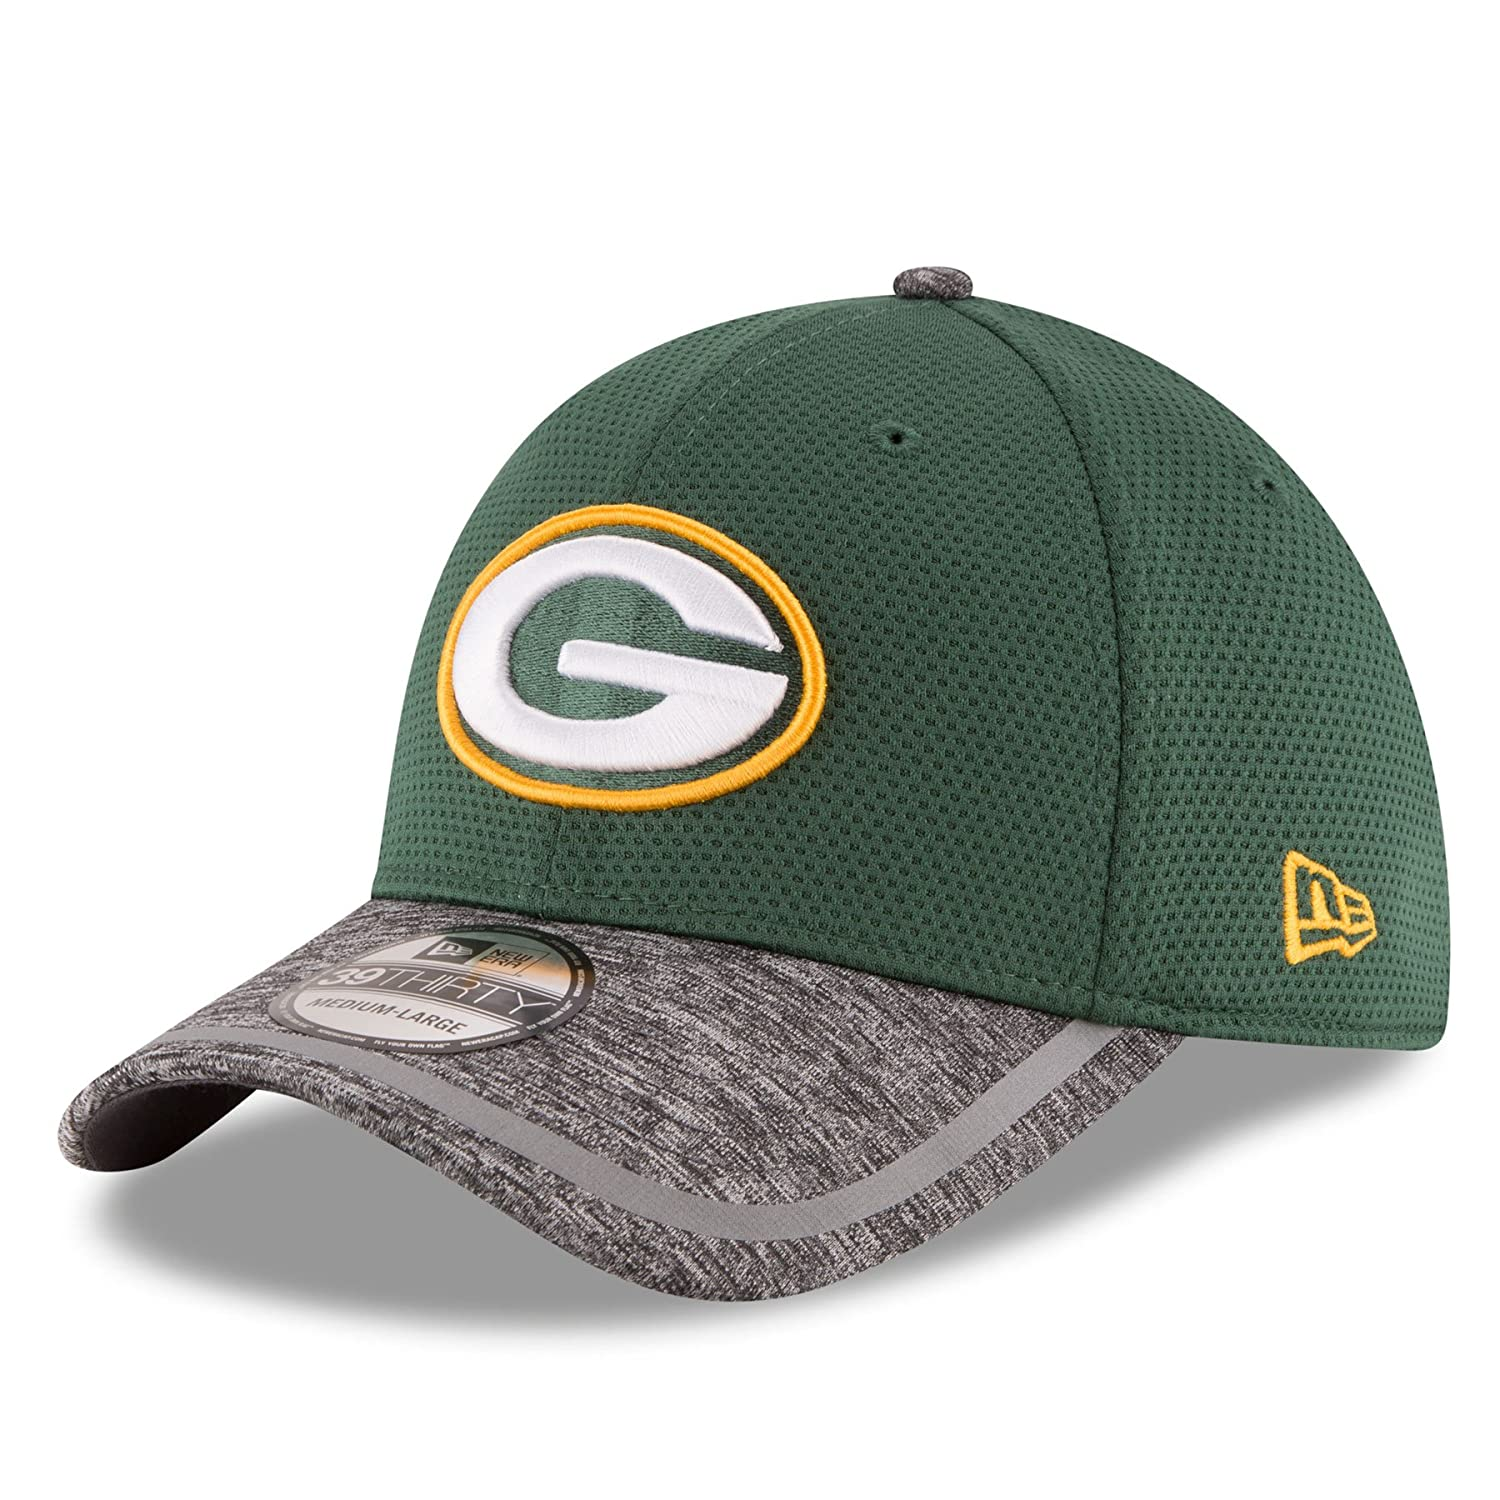 6889b12ecb9334 Amazon.com : New Era Green Bay Packers 2016 Training Camp 39THIRTY Flex Fit  Hat : Clothing